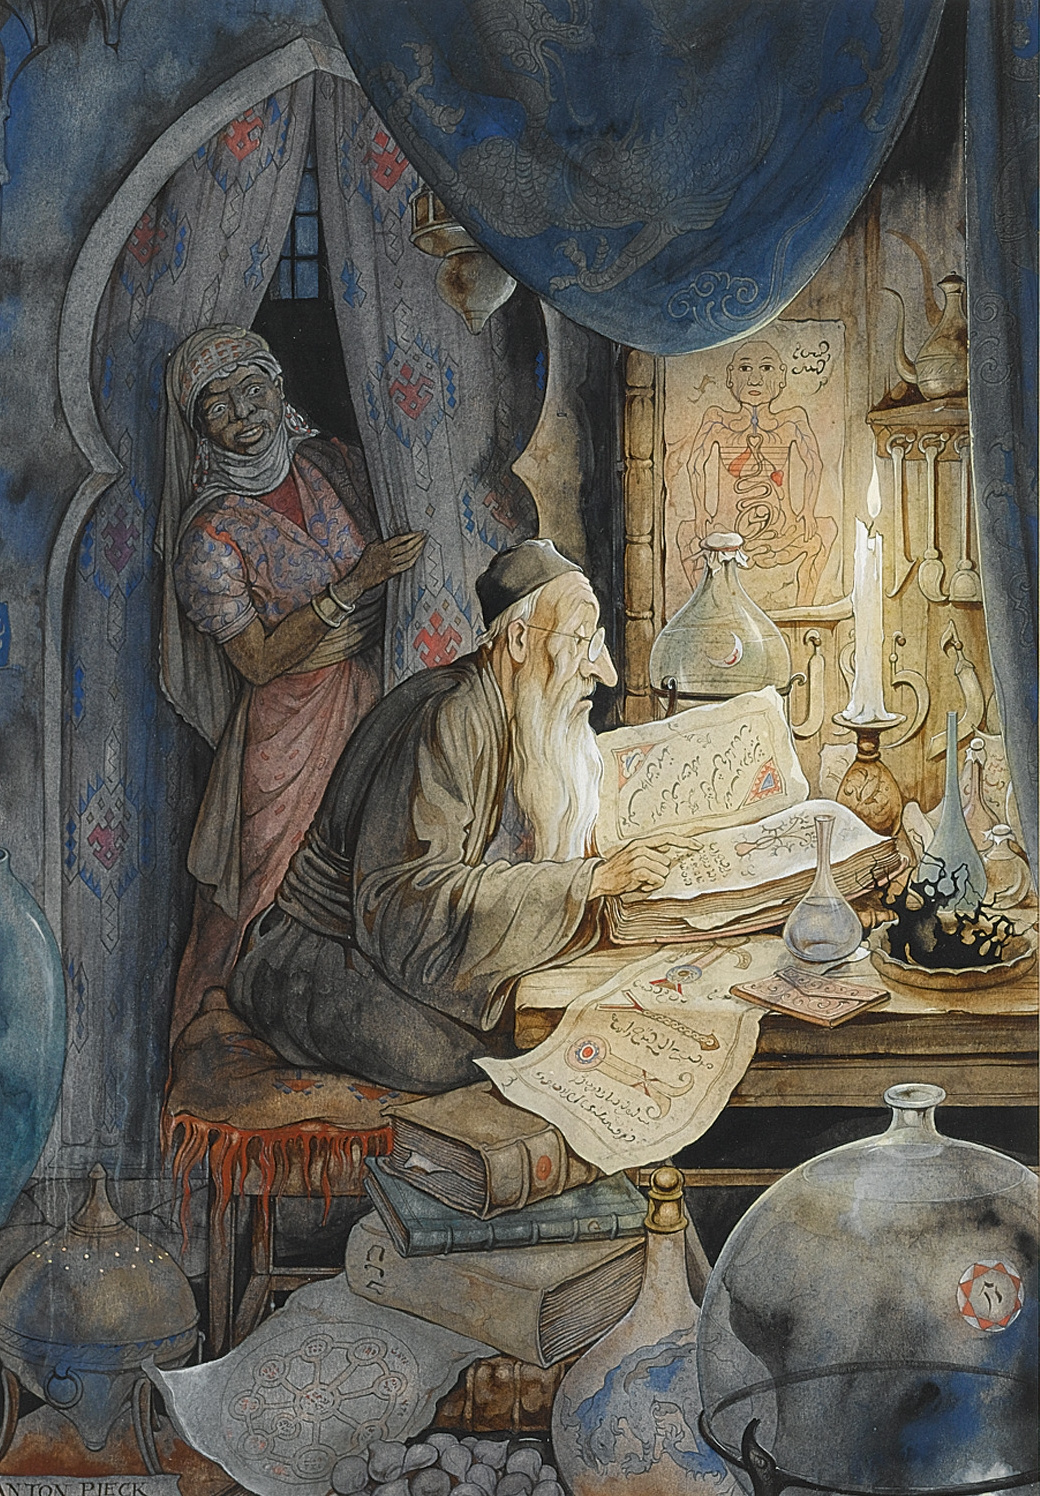 """Anton Pieck. """"The book of the thousand and one nights"""". The night of the 27th. The history of the Jewish doctors"""